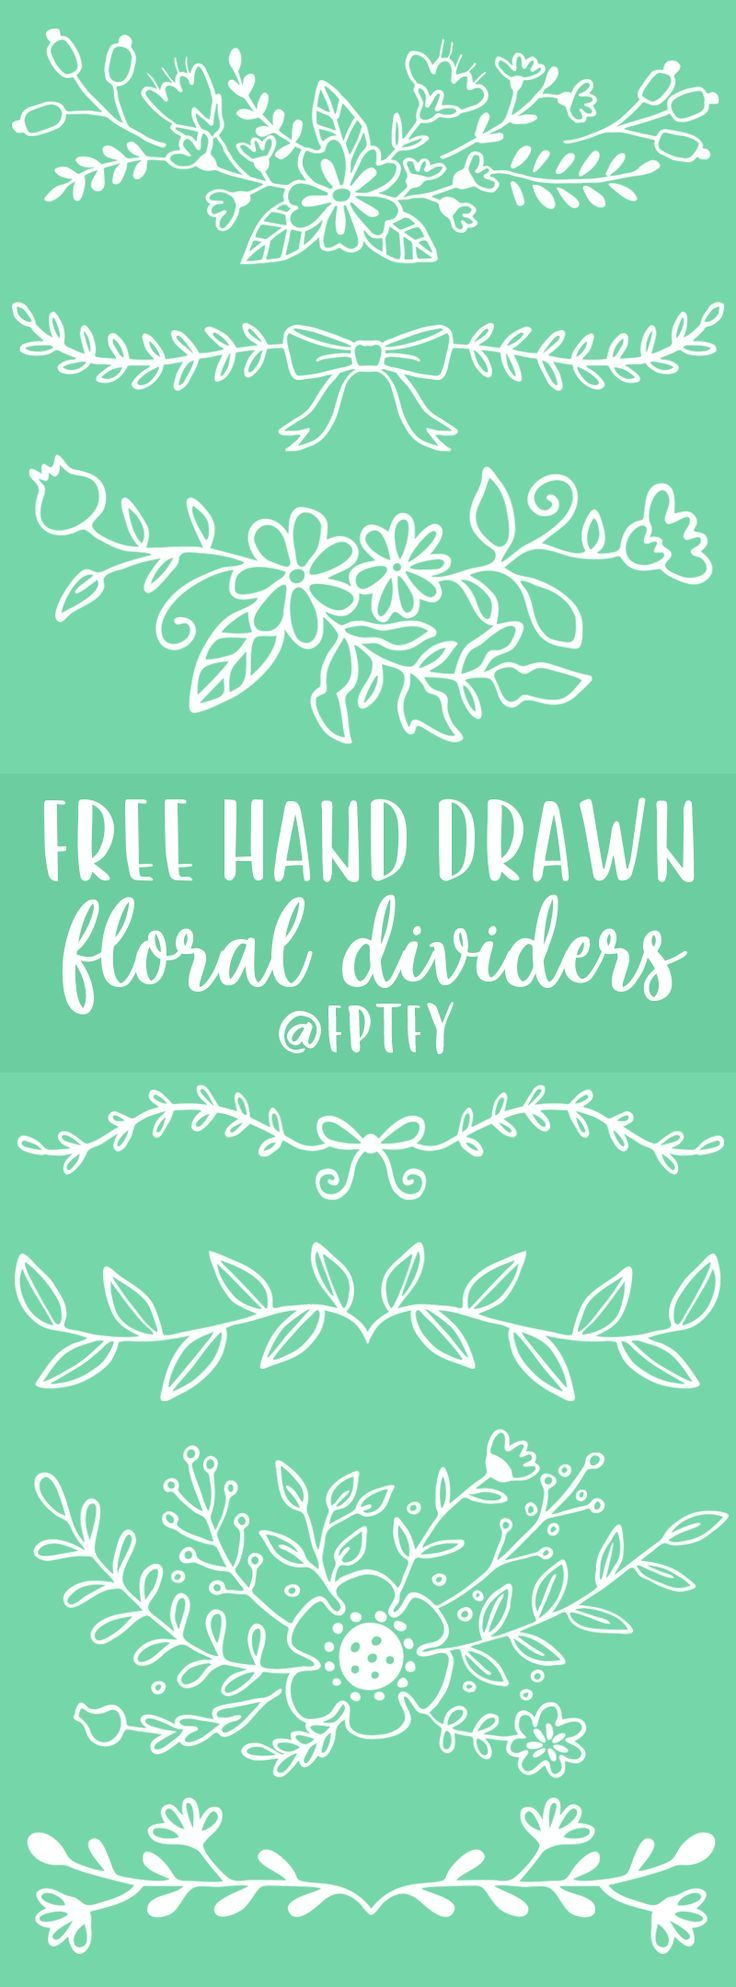 114 best Planners and Printables images on Pinterest | Free ...